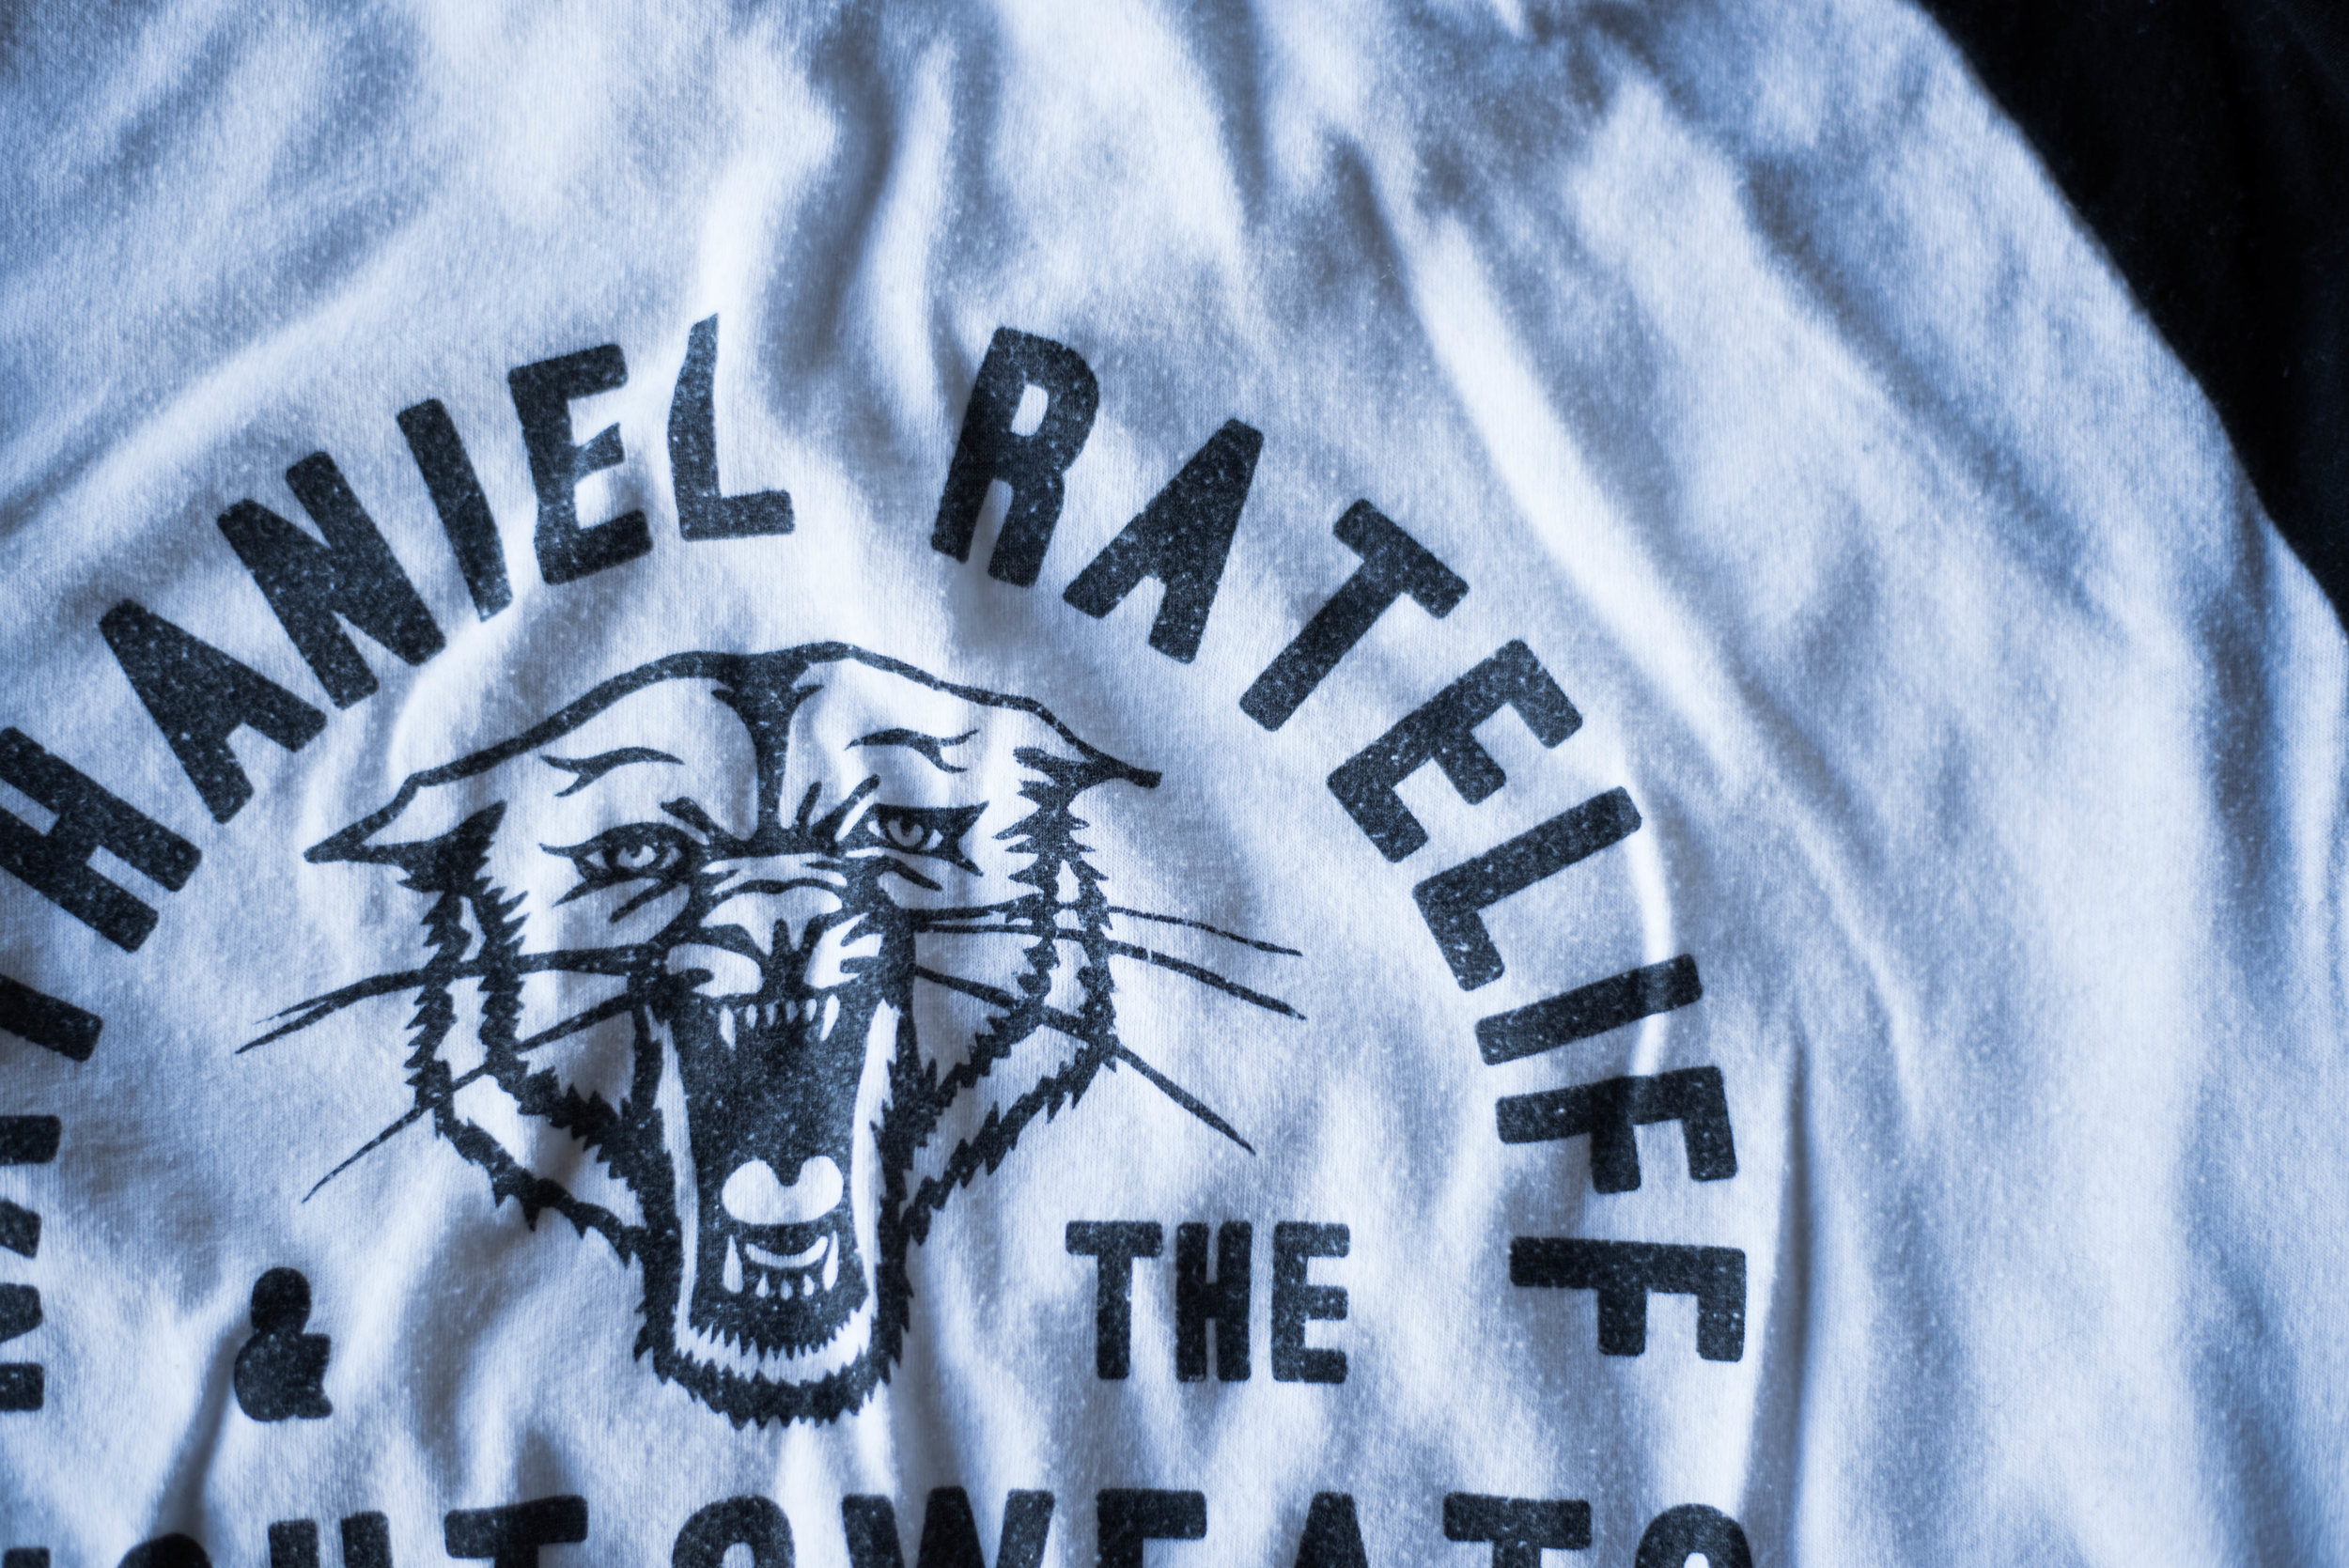 Nathaniel Rateliff & The NightSweats. Print method SOFT. Screen printed on a Los Angeles Apparel Raglan. Printed by A Small Print Shop.